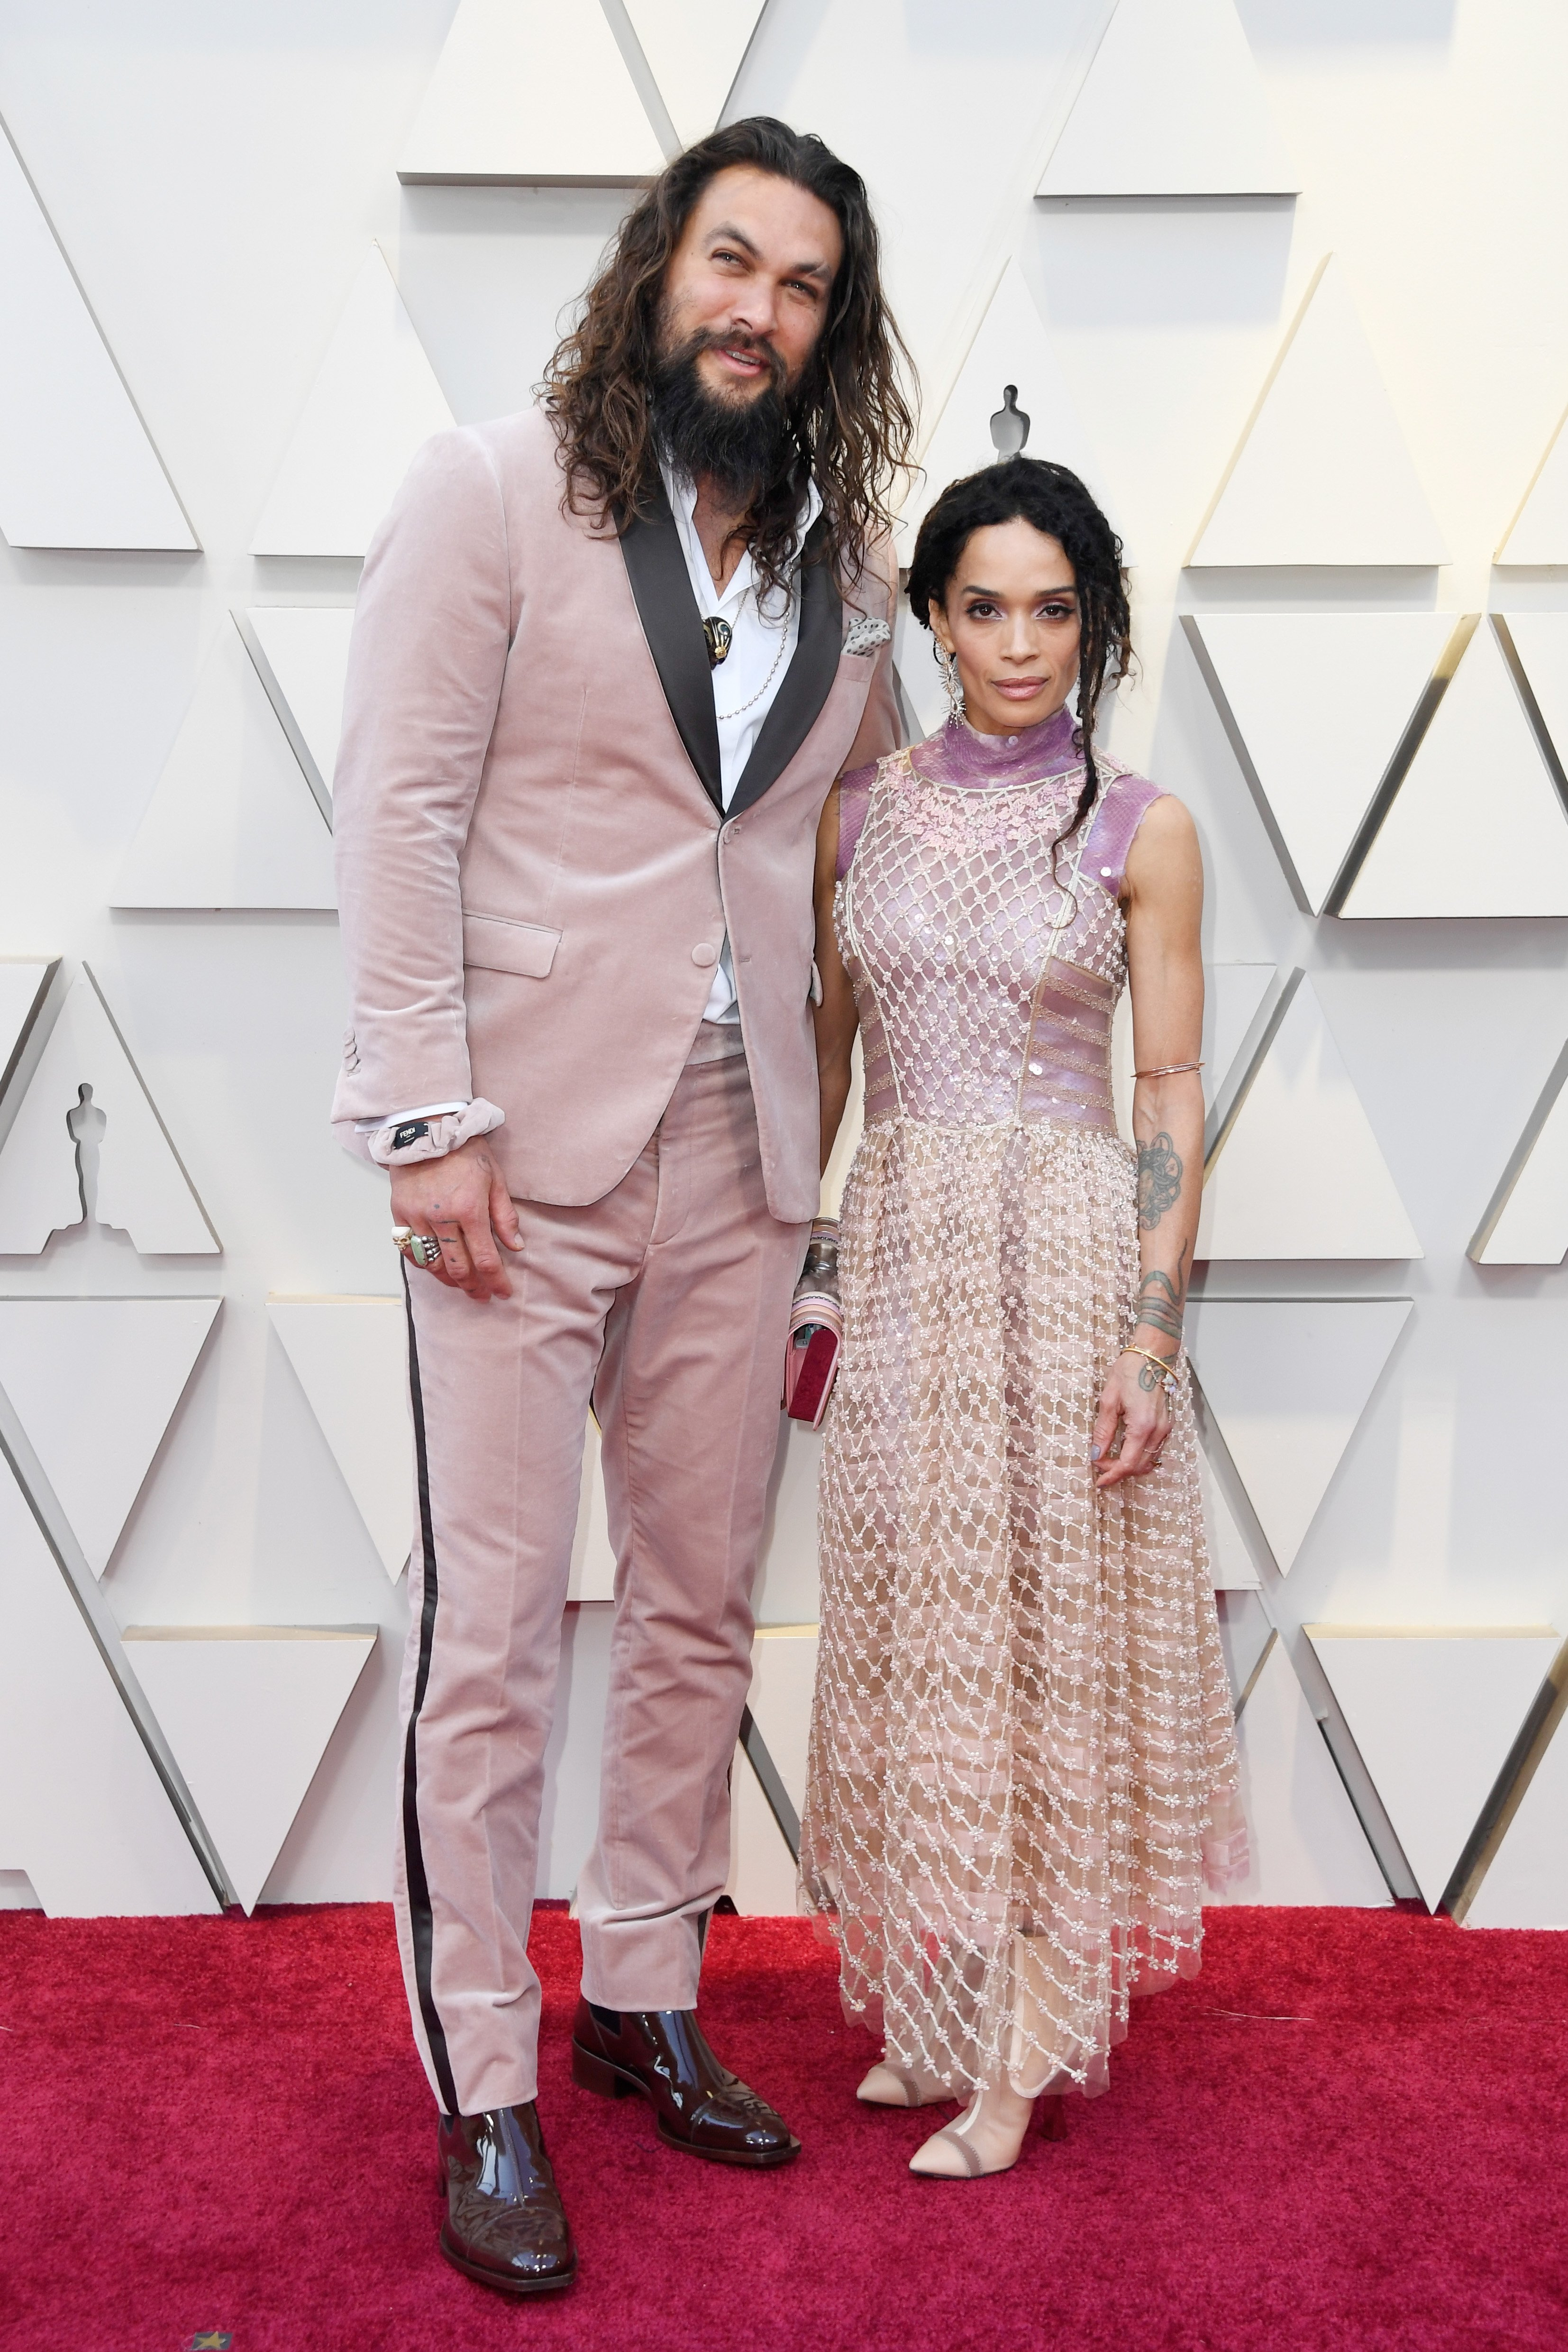 Lisa Bonet and Jason Momoa attend the 2019 Academy Awards. | Photo: GettyImages/Global Images of Ukraine